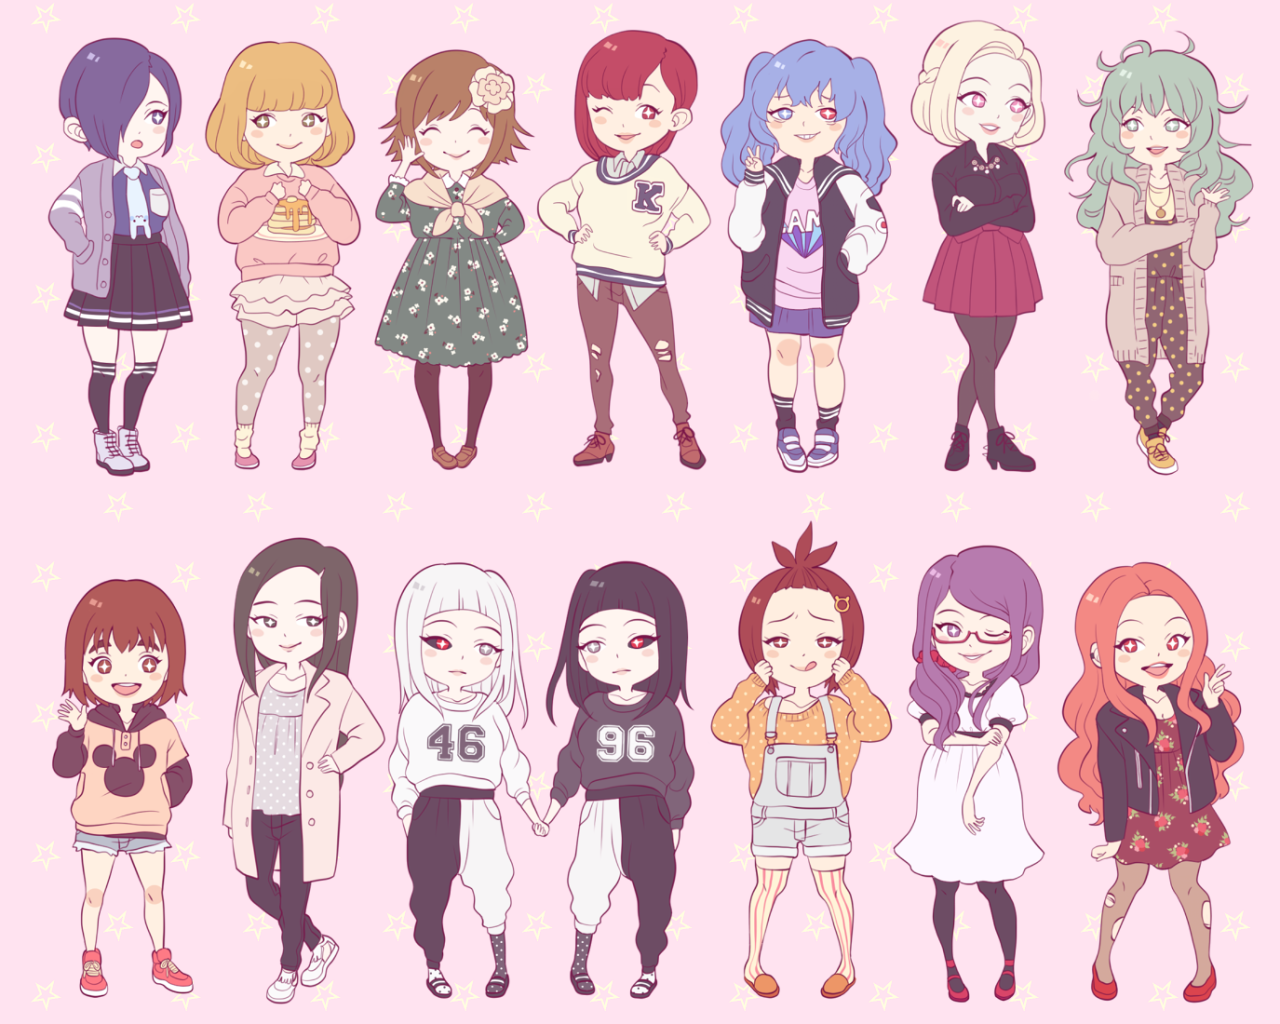 519 Images About Anime Fashion On We Heart It